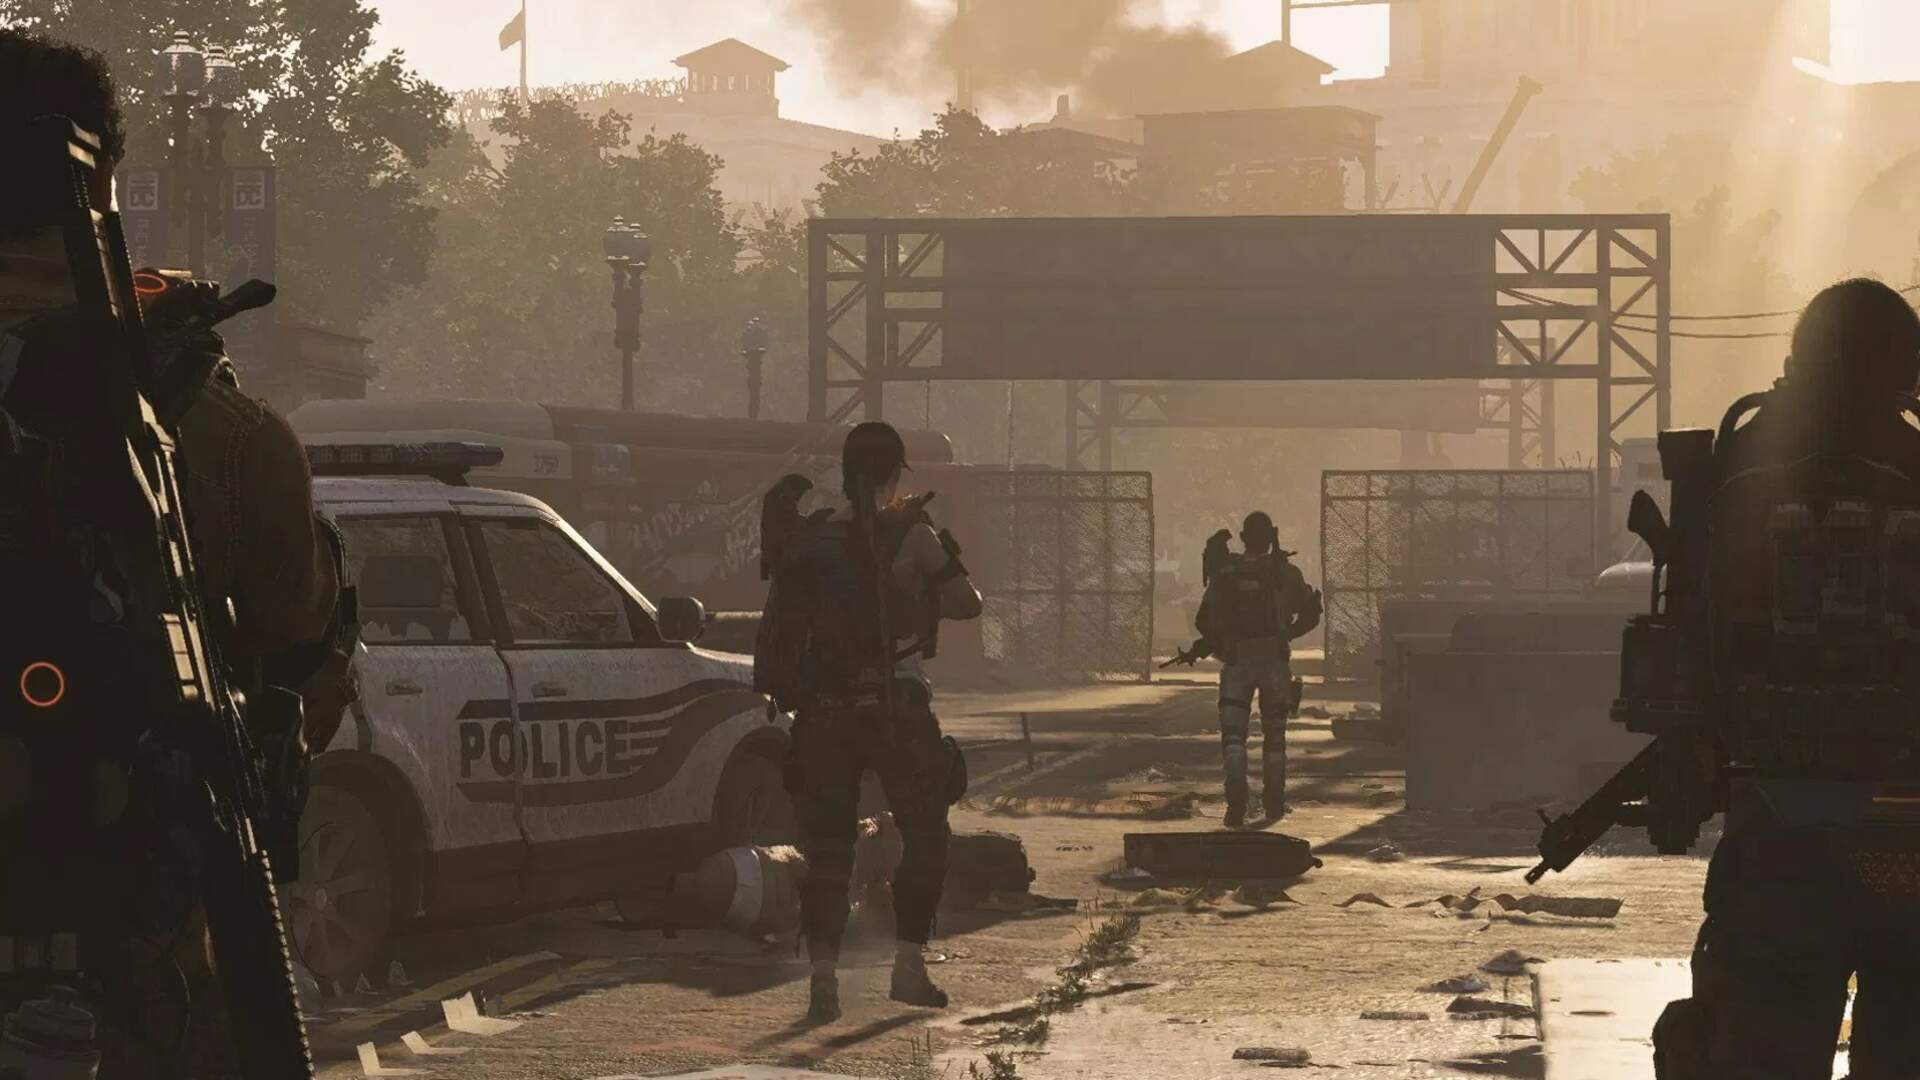 The Division 2 PC Specs Have an Elite 4K Setting That Will Push Even Top Systems